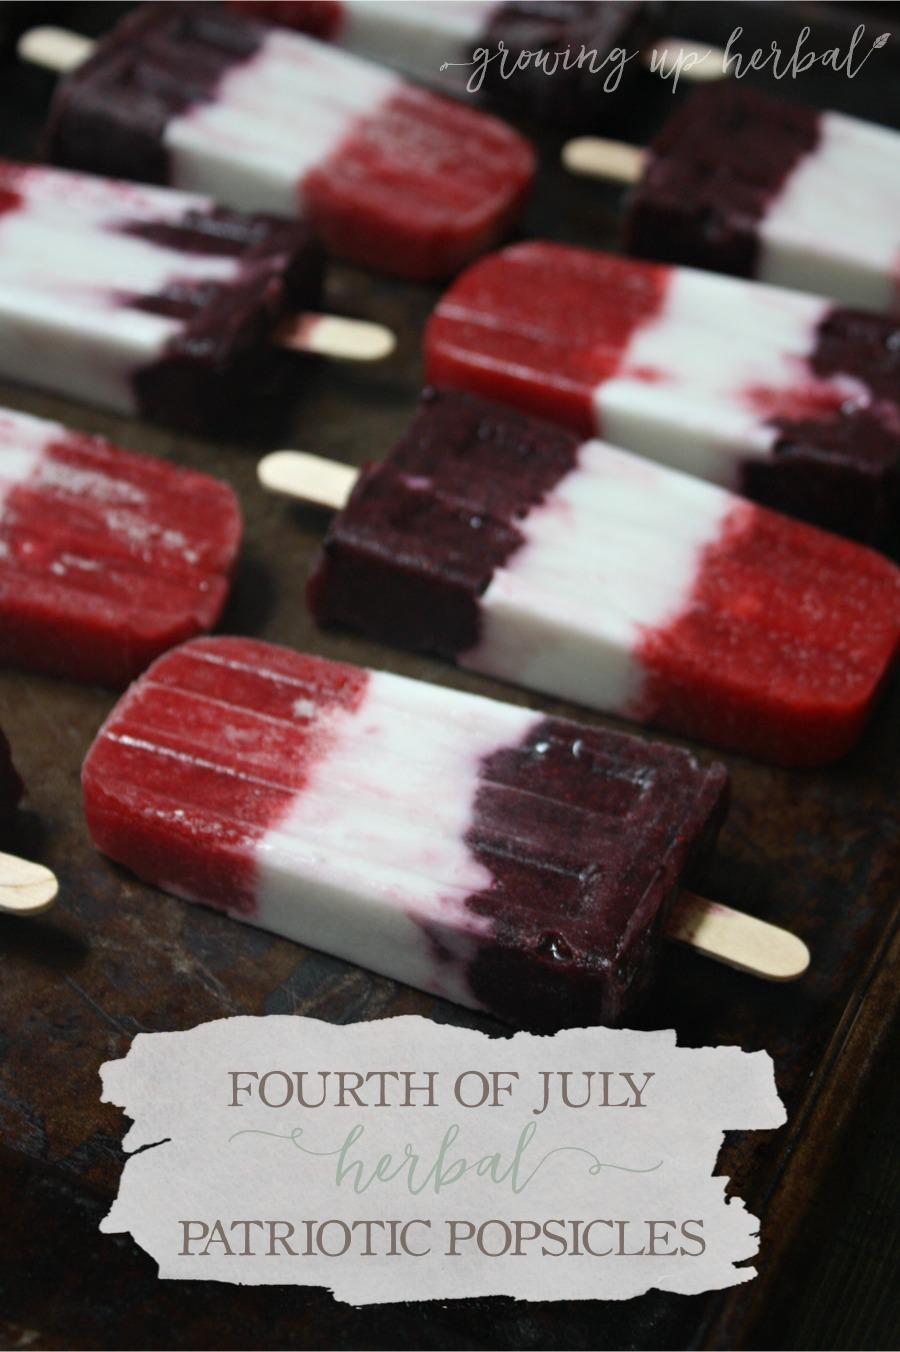 Fourth of July Herbal Patriotic Popsicles (Sugar-Free)   Growing Up Herbal   Make these delicious, healthy, sugar-free herbal patriotic popsicles for your 4th of July celebration!